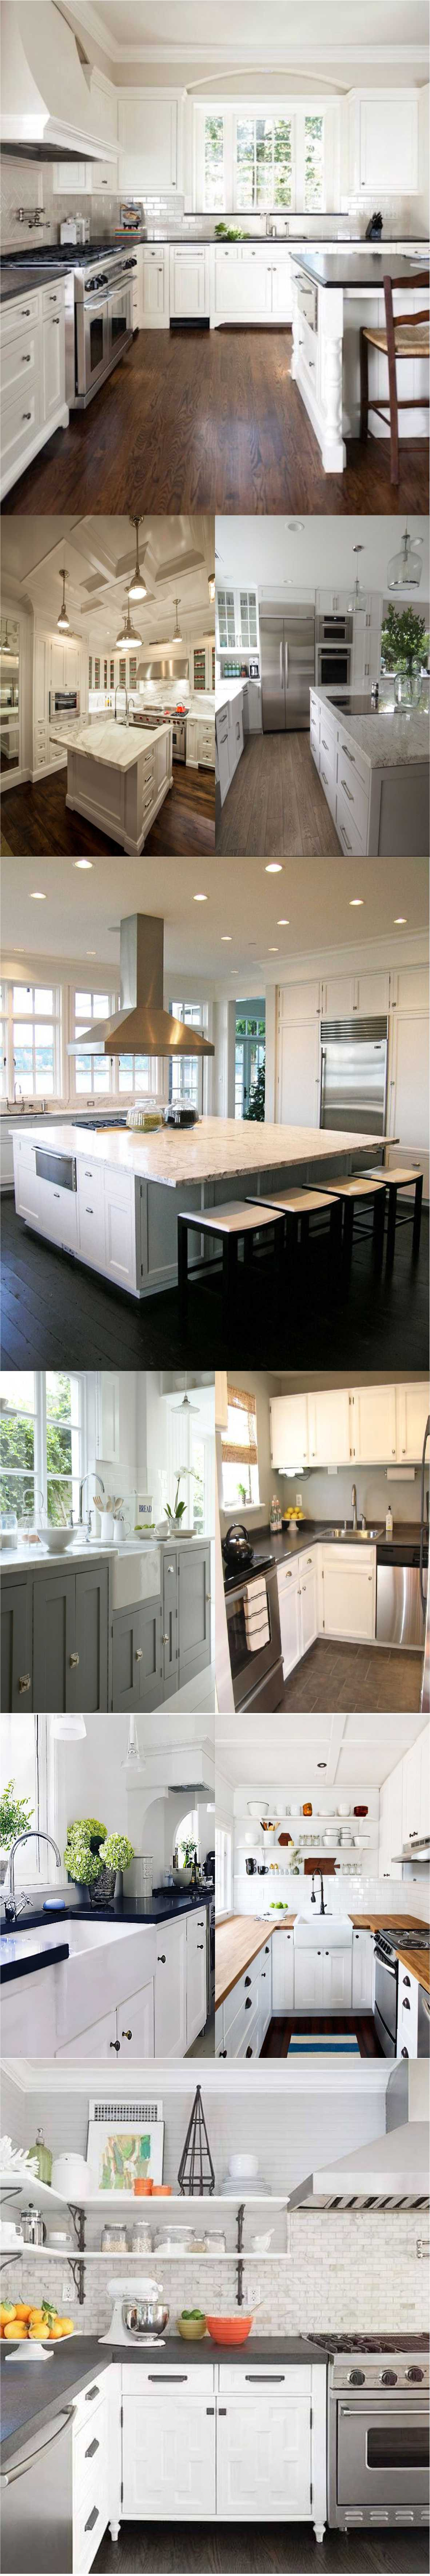 White Kitchen Countertops 2018